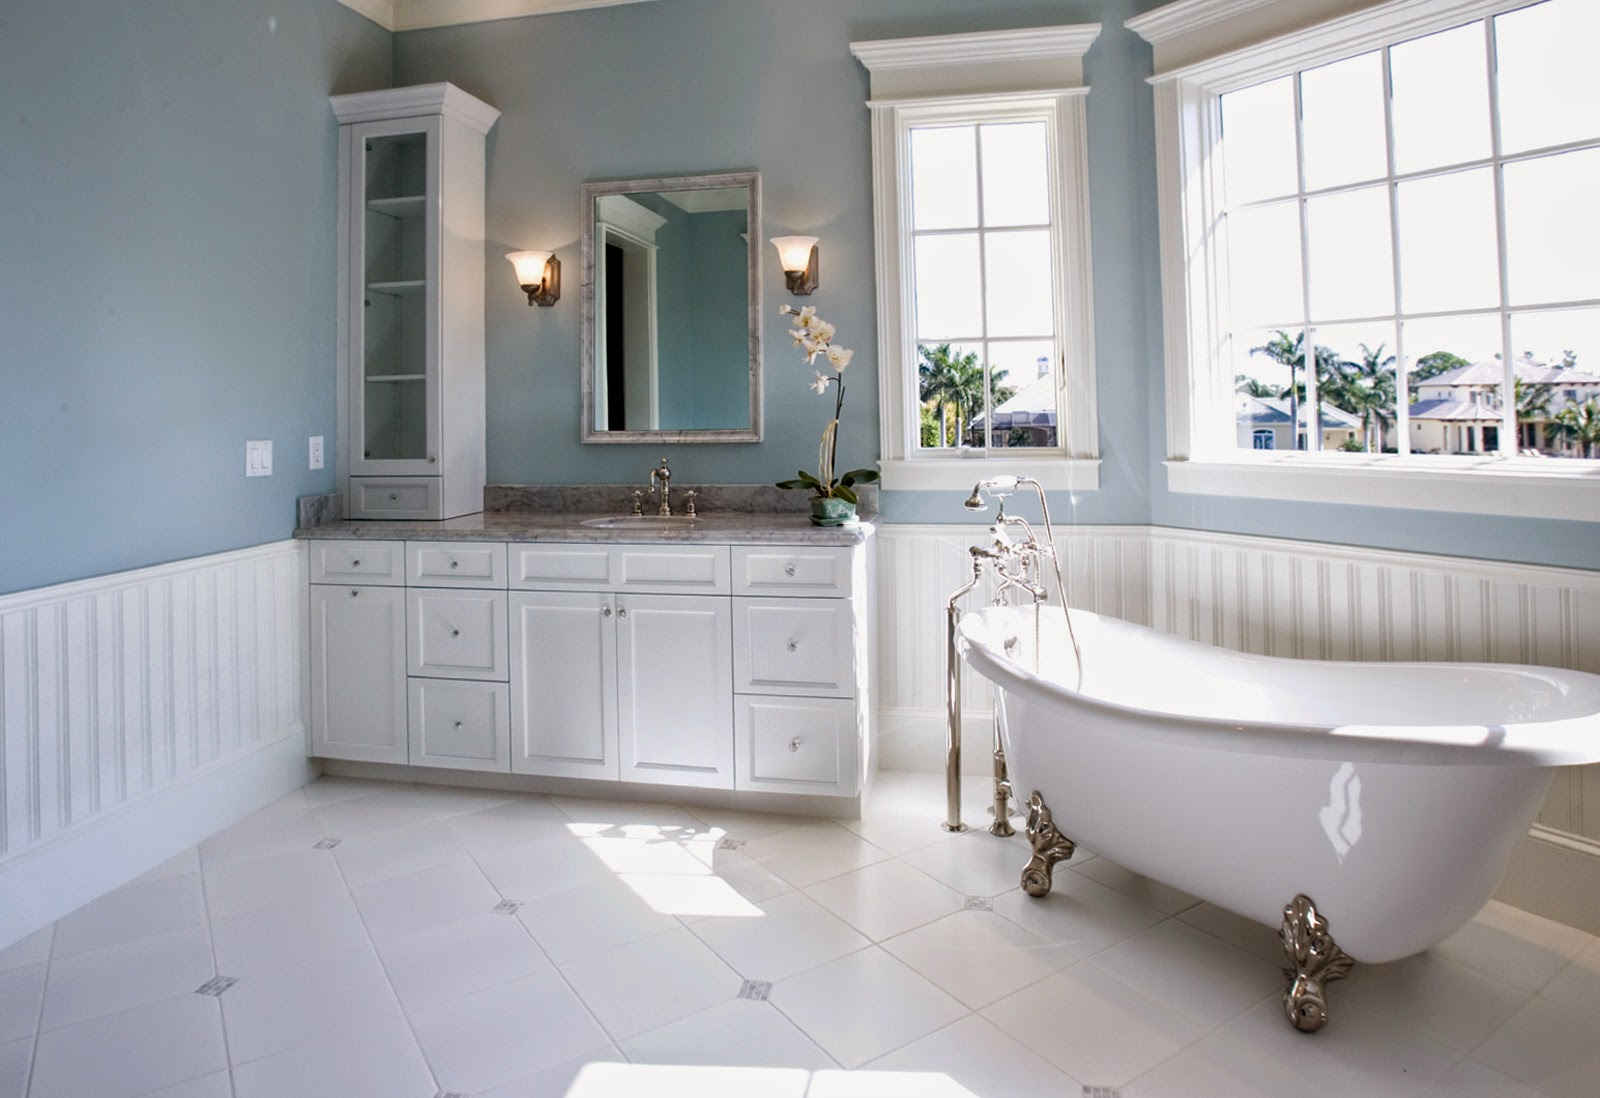 Top 10 beautiful bathroom design 2014 home interior blog for Beautiful bathroom decor